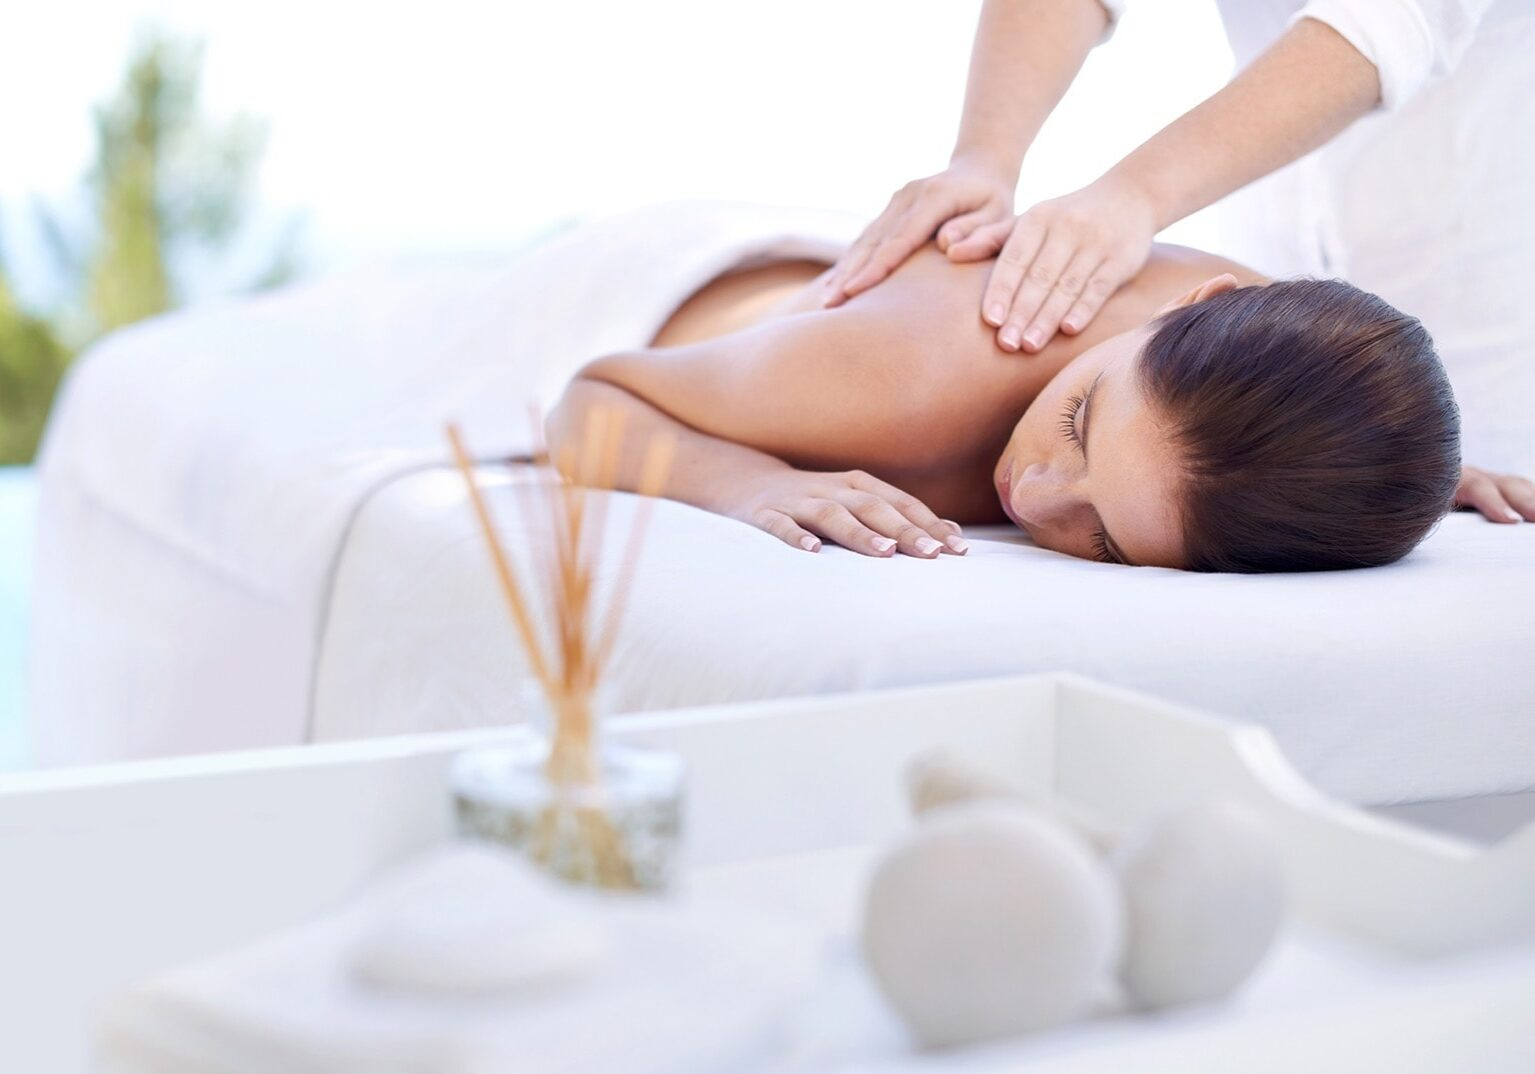 Cropped shot of an attractive young woman enjoying a relaxing massage